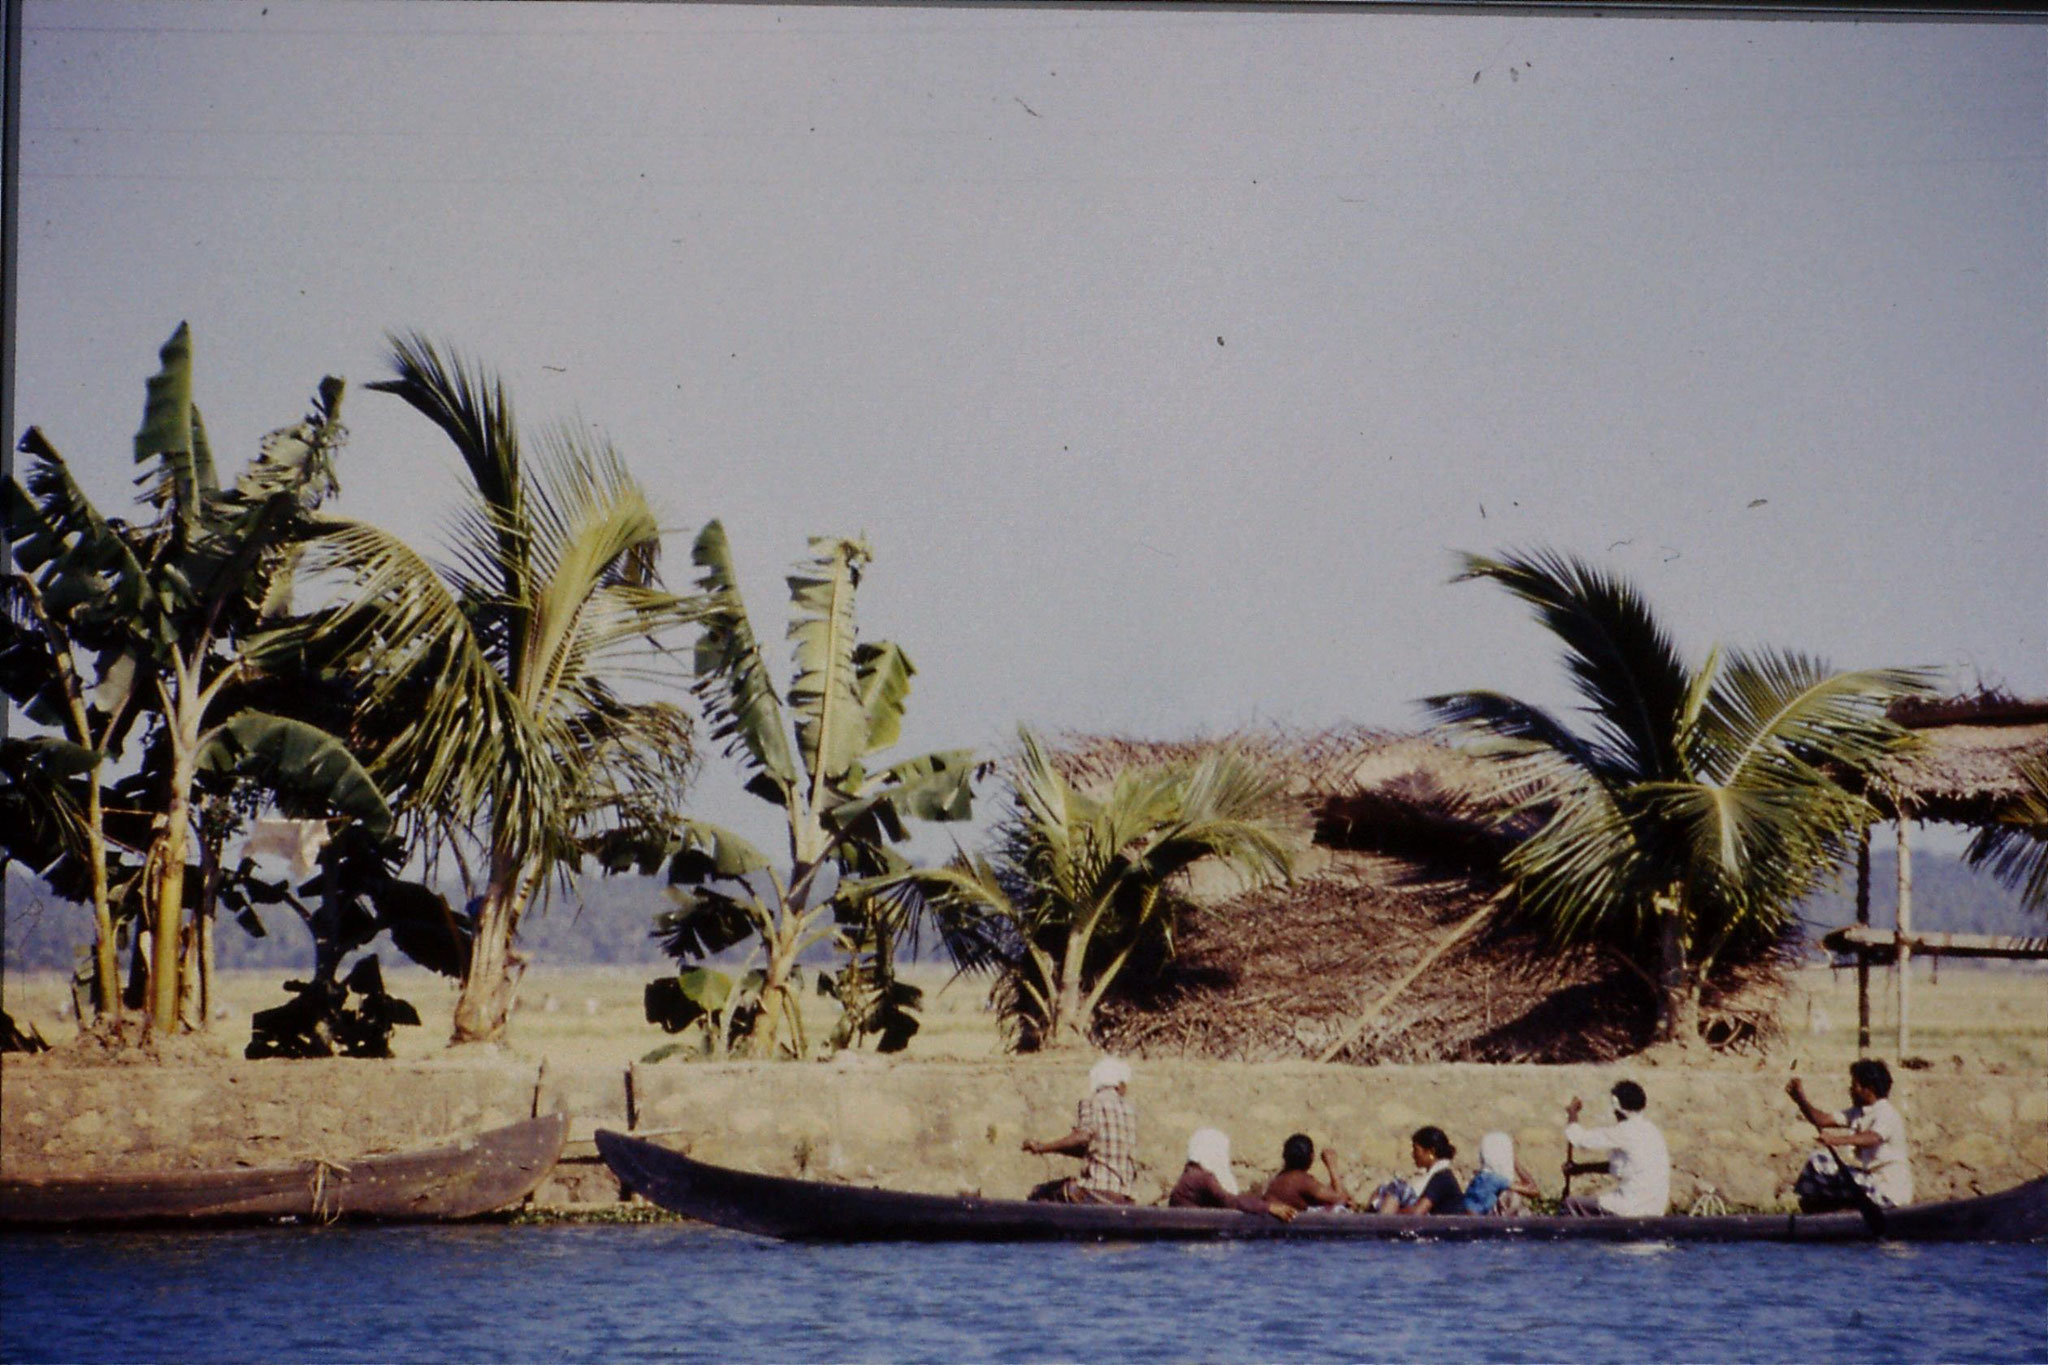 106/8: 23/2/1990 Boat to Alleppey